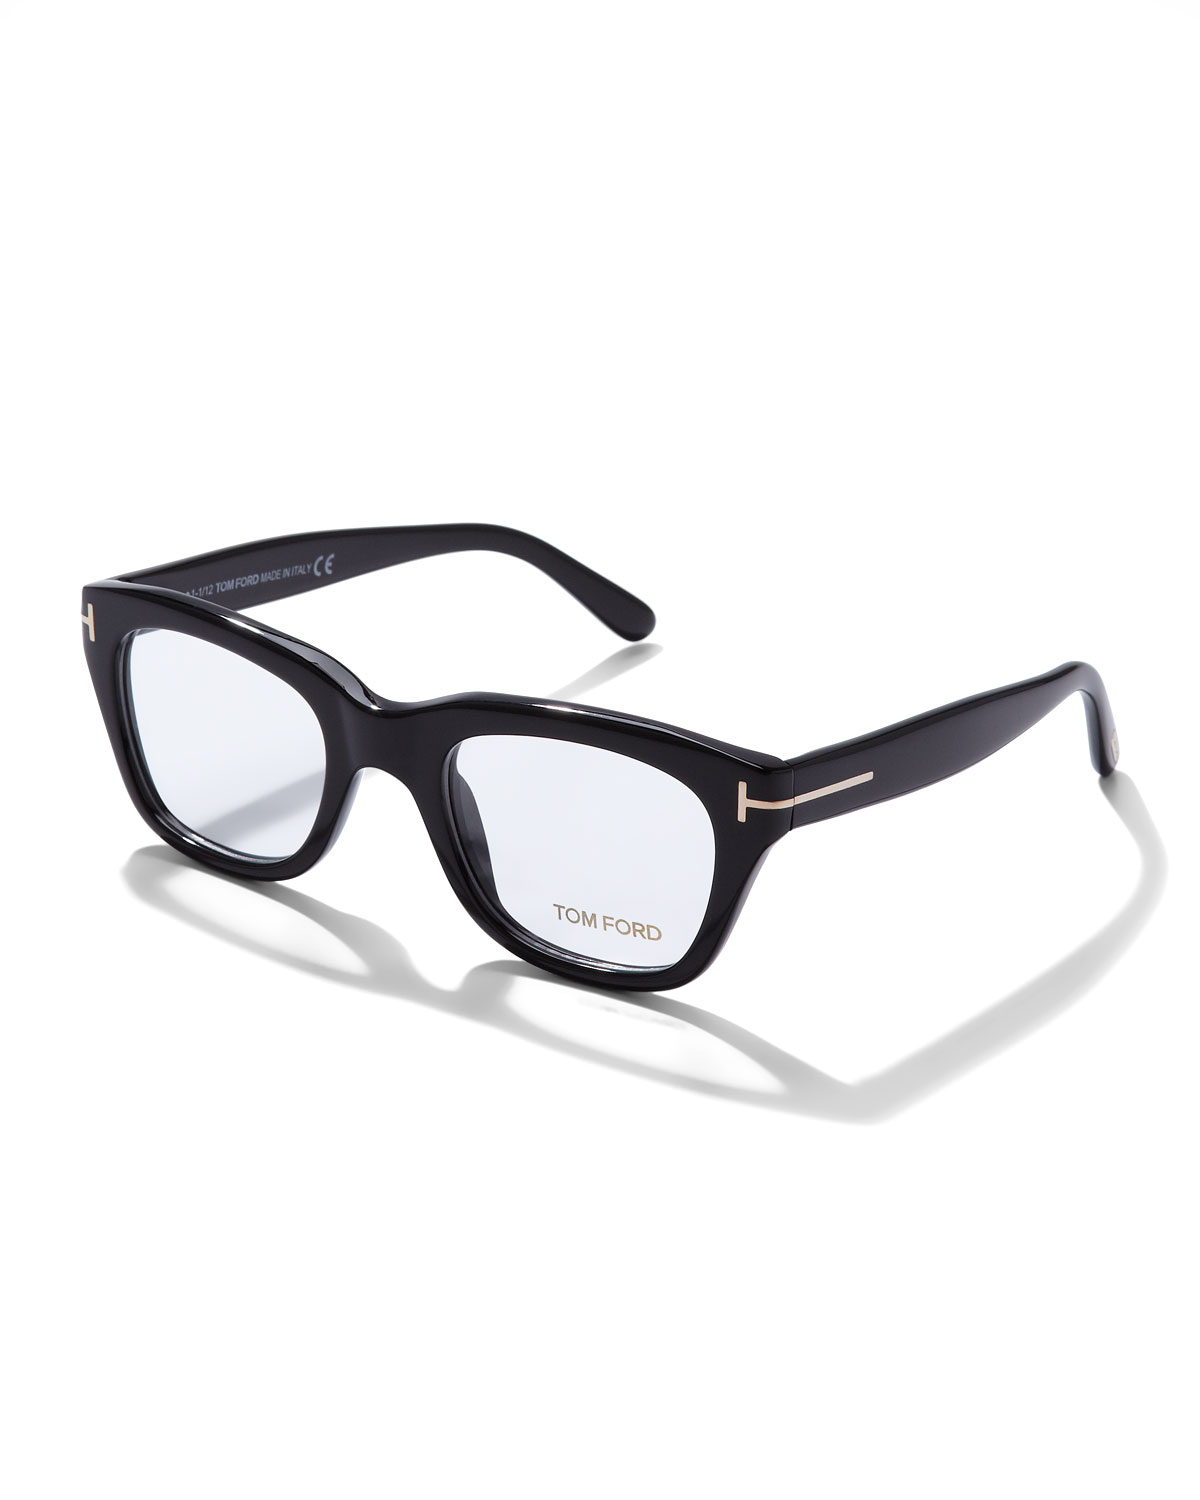 TOM FORD Large Acetate Frame Fashion Glasses, Black | Neiman Marcus